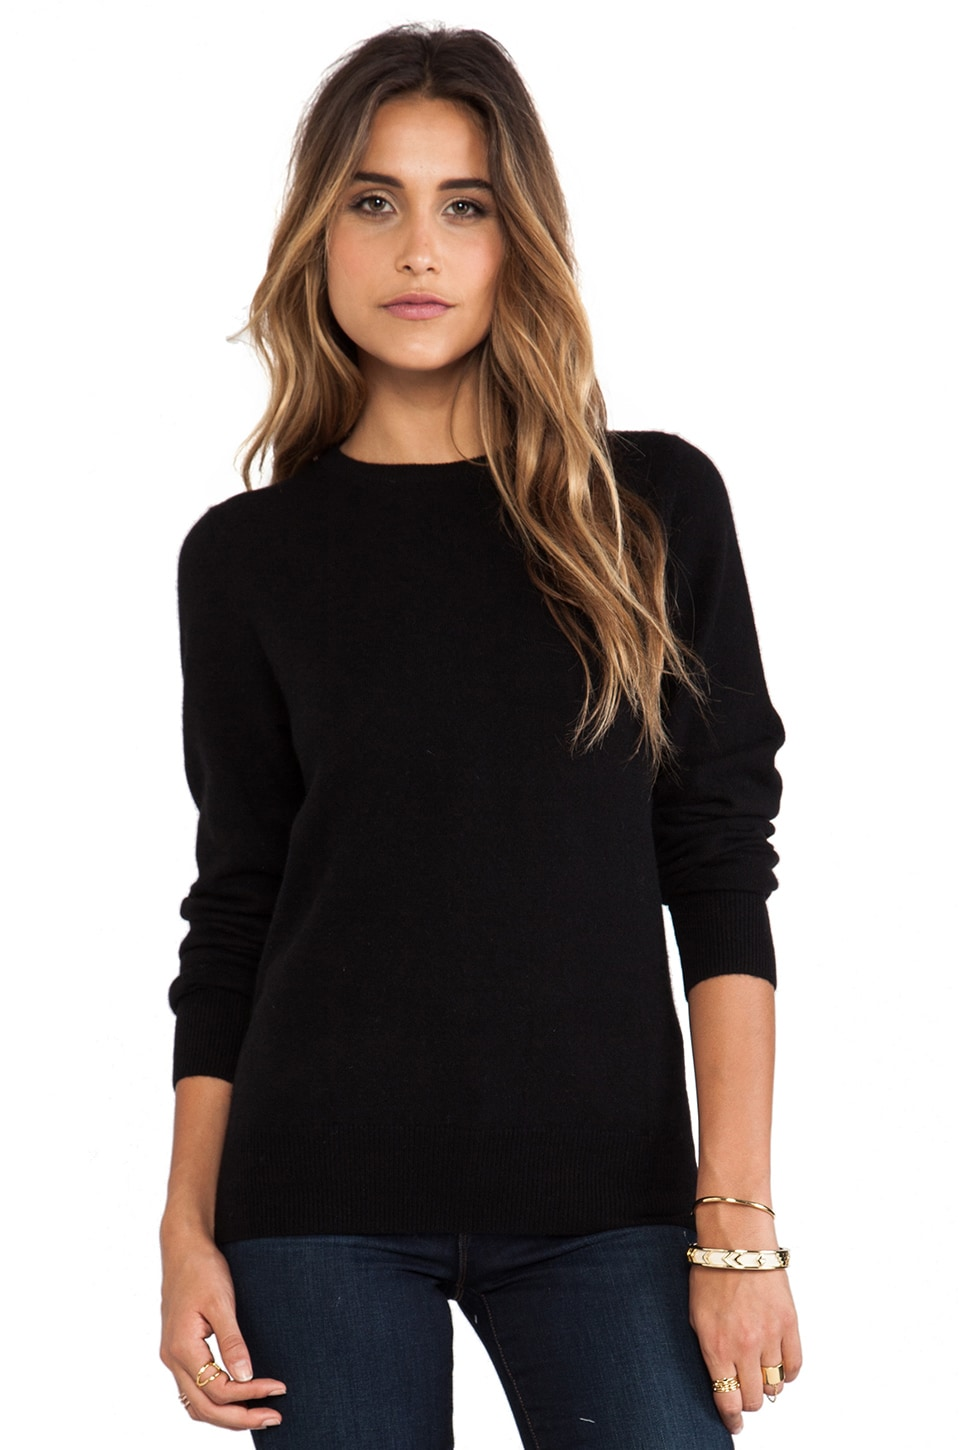 DemyLee Joie Cashmere Elbow Patch Sweater in Black